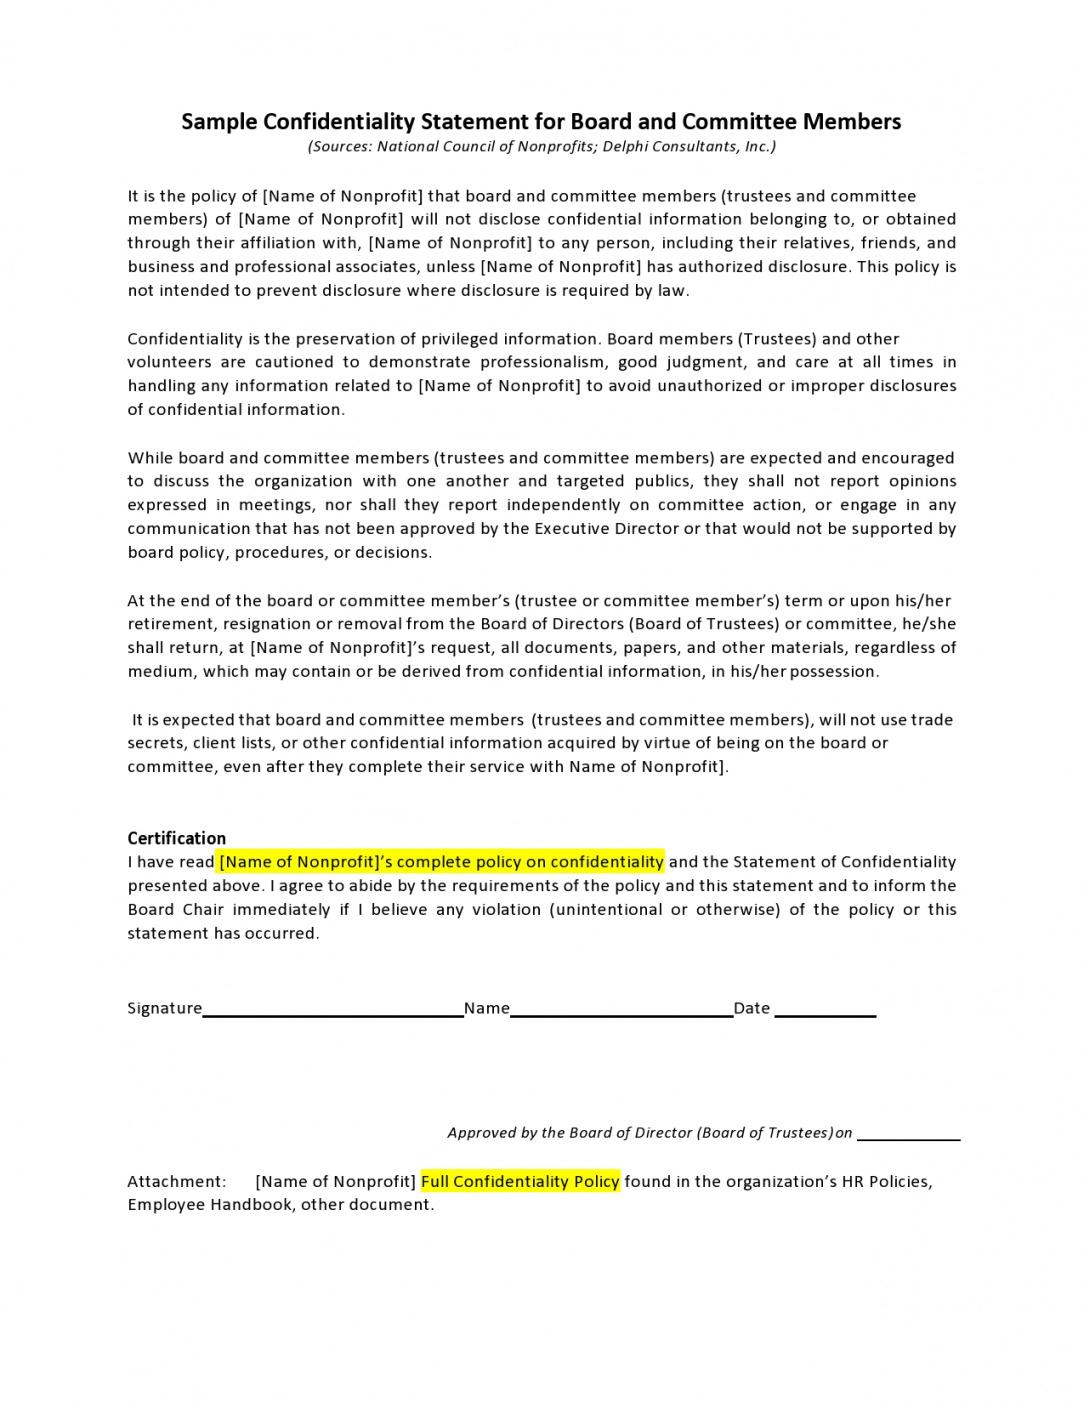 printable 24 simple confidentiality statement & agreement templates confidential statement template